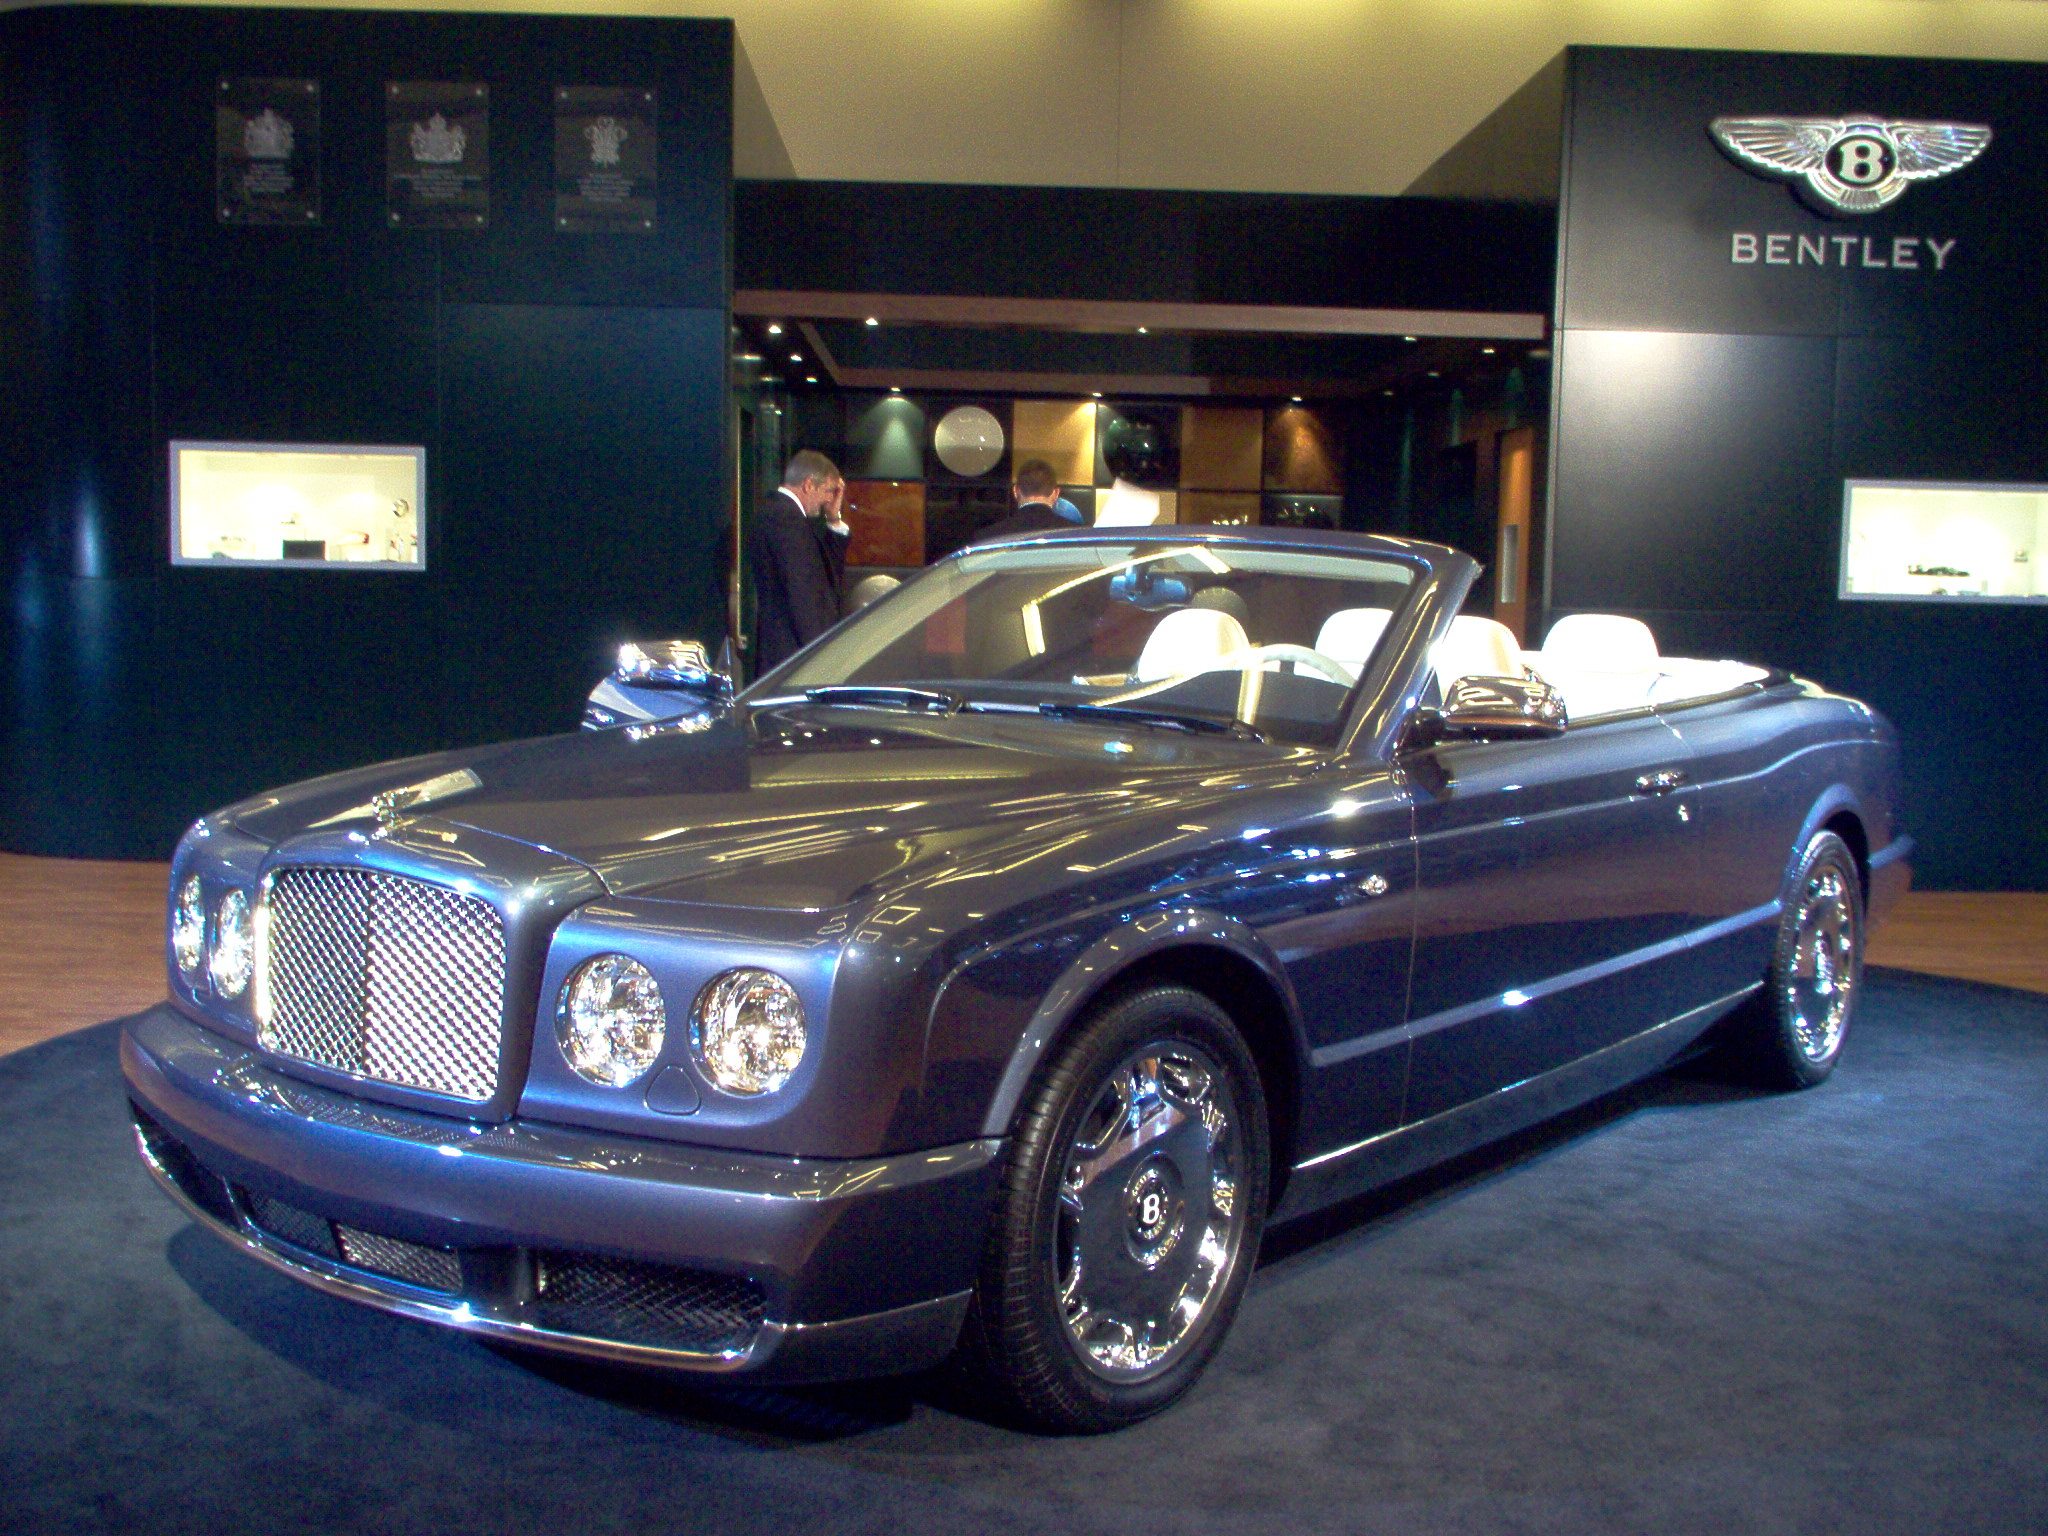 2014 bentley arnage images hd cars wallpaper 2007 bentley azure information and photos zombiedrive 2007 bentley azure 11 bentley azure 11 vanachro images vanachro Images